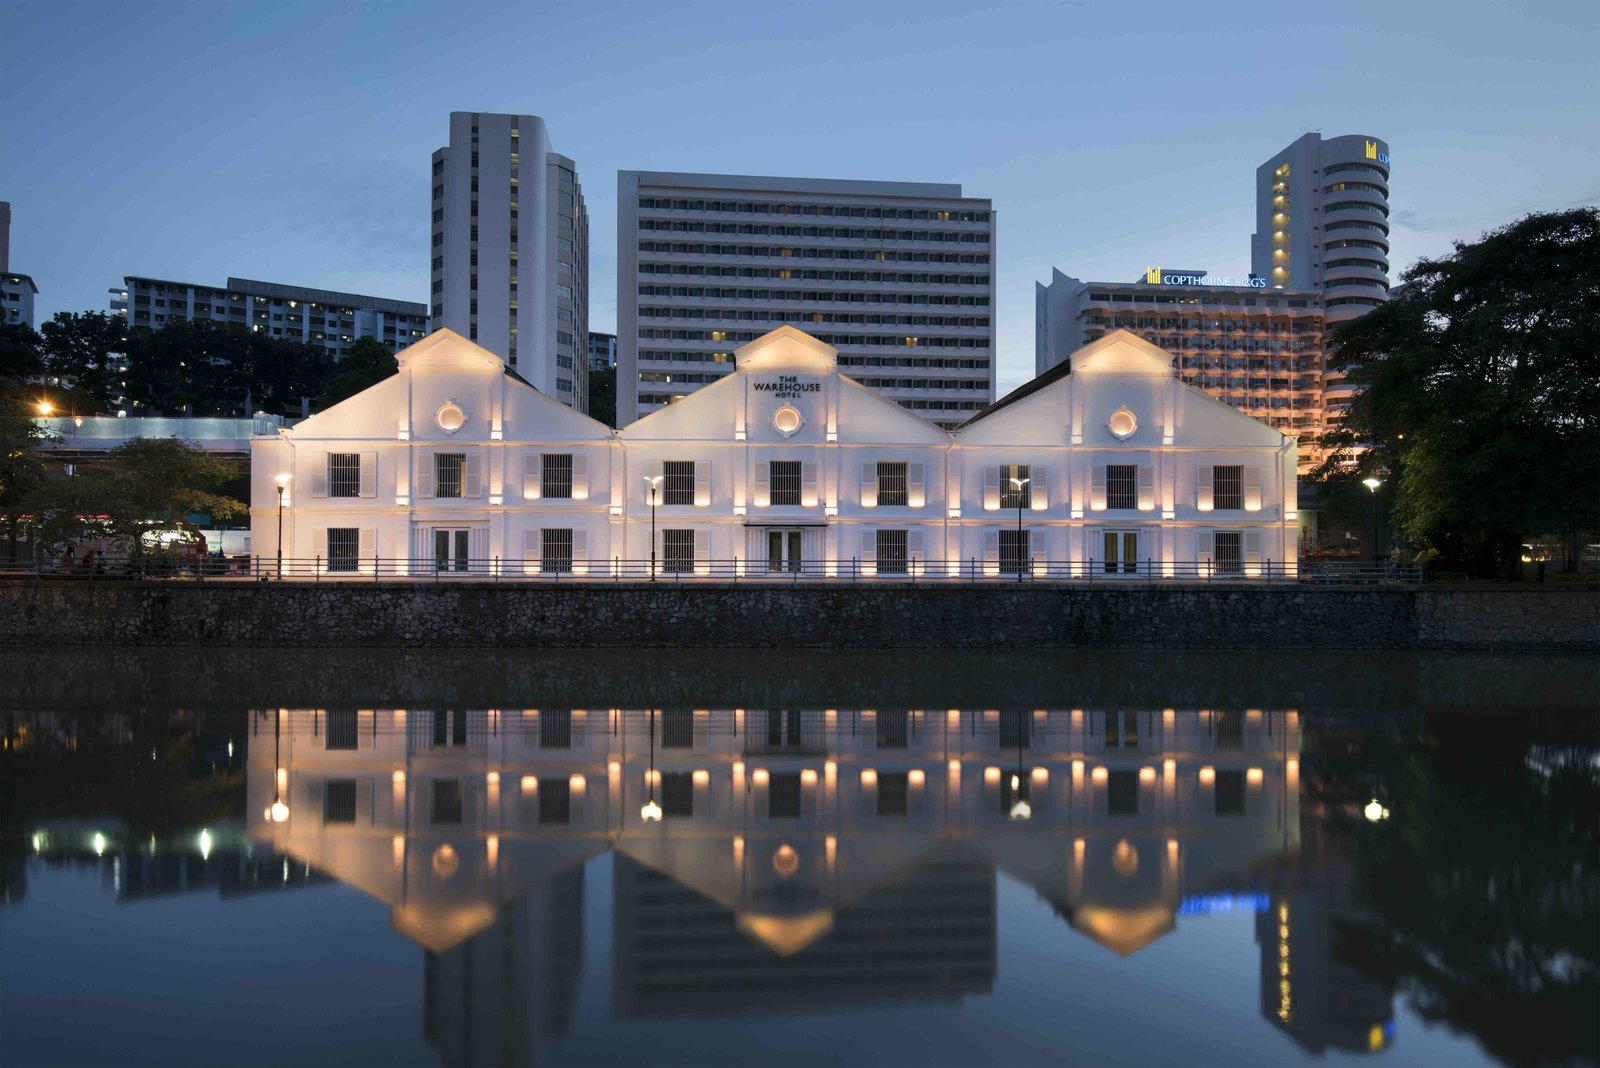 This 1895 dockside warehouse was converted into a hotel with voluminous rooms, high ceilings, concrete walls and exposed beams complimented by elegant furniture with sleek metallic details.